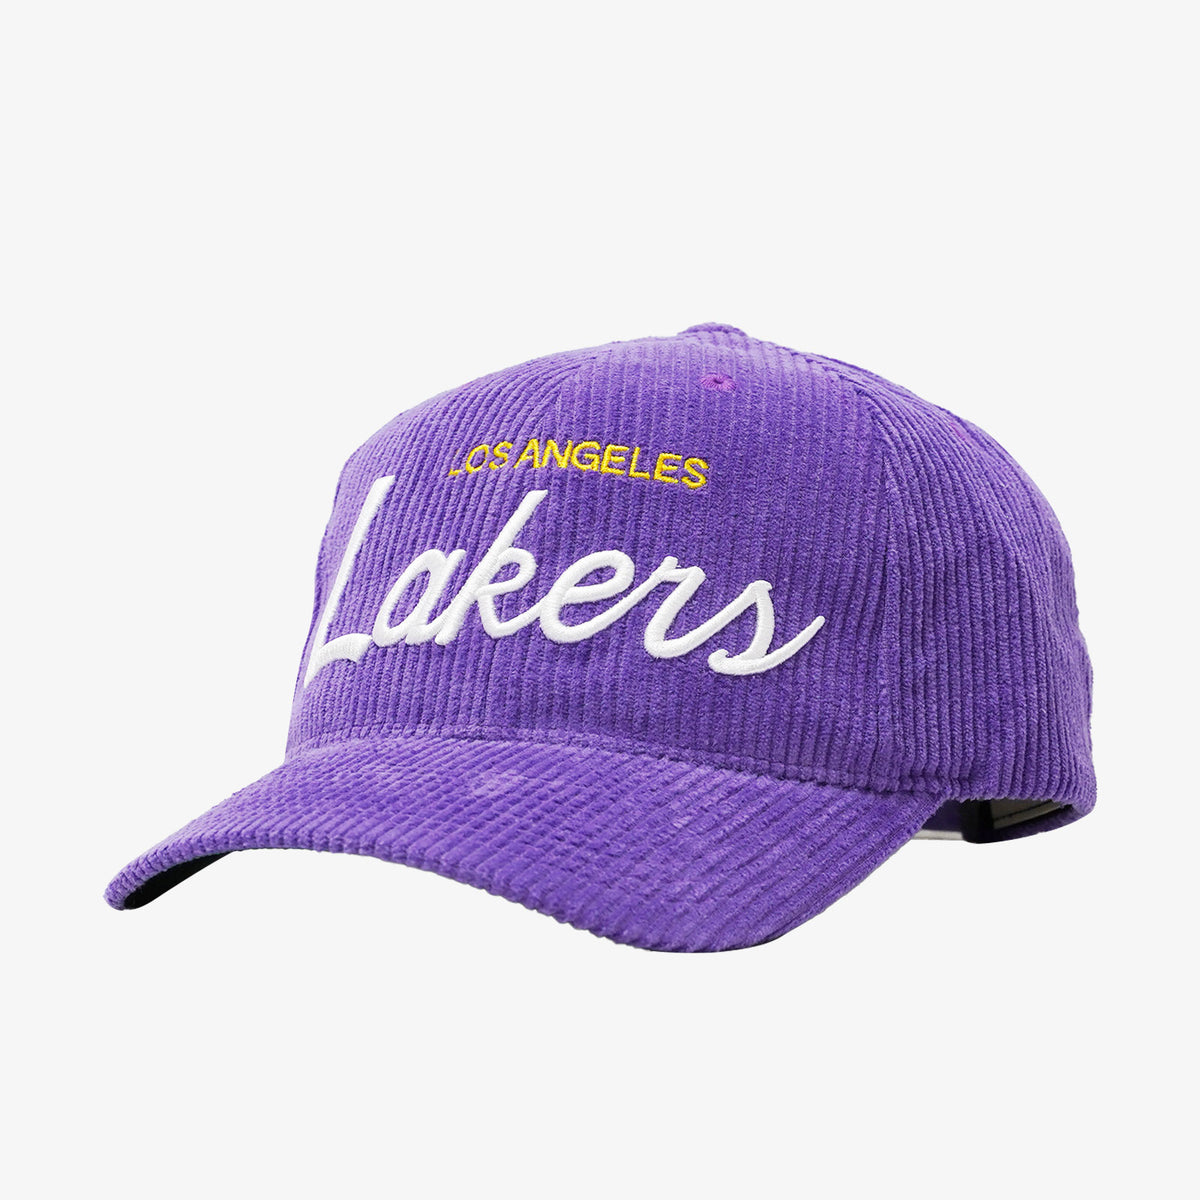 Los Angeles Lakers Montage Deadstock Snapback - Purple